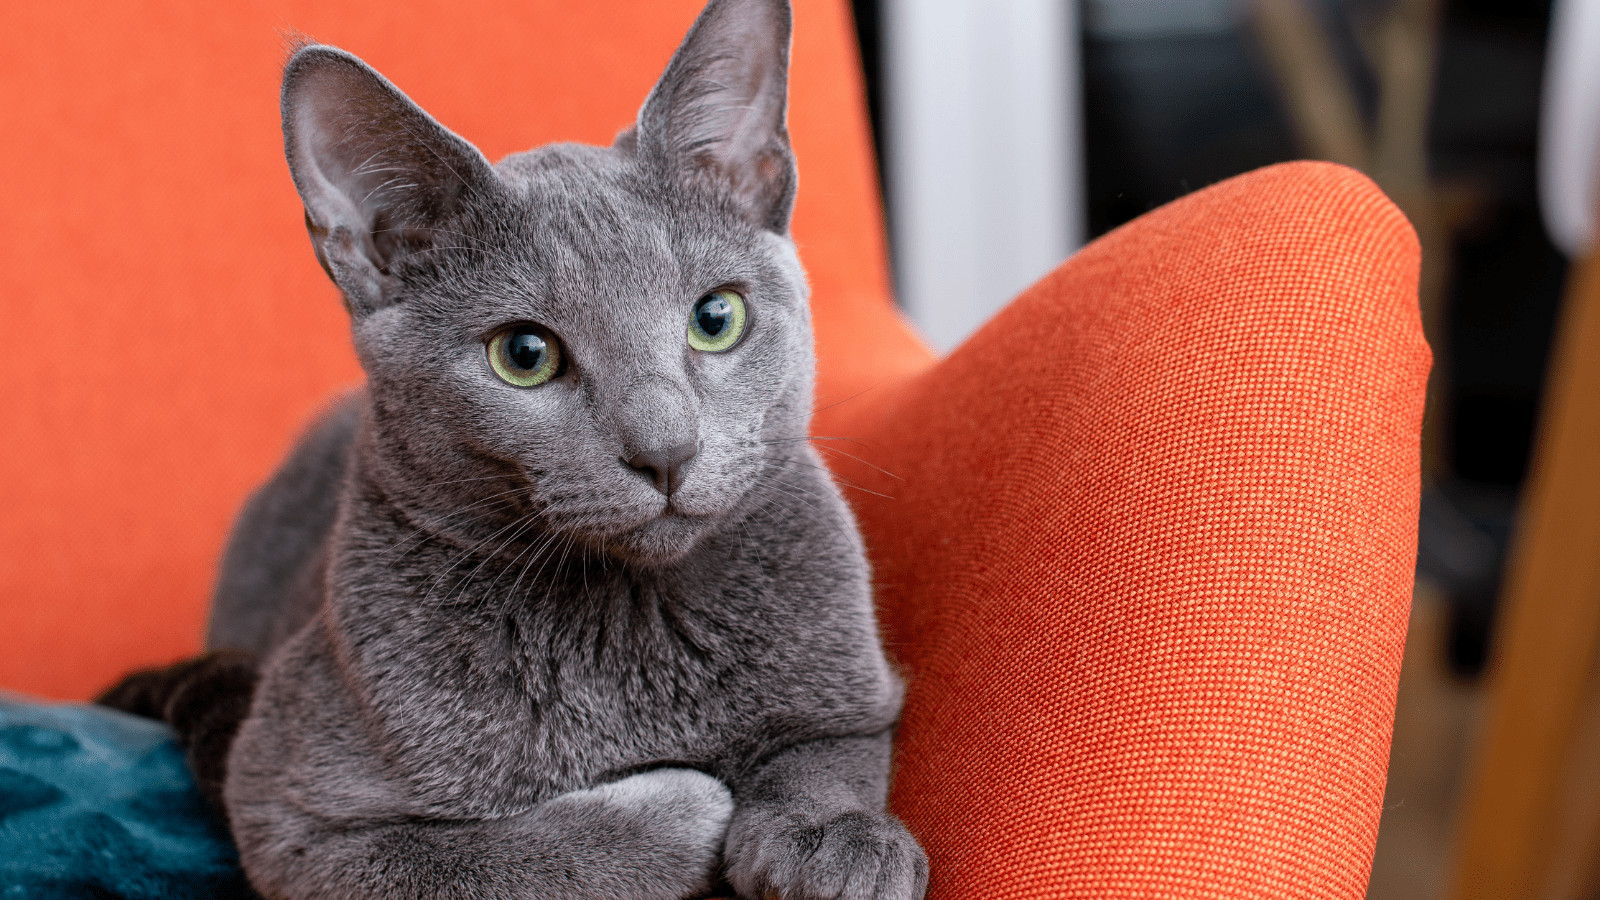 Do Russian Blue cats cause allergies